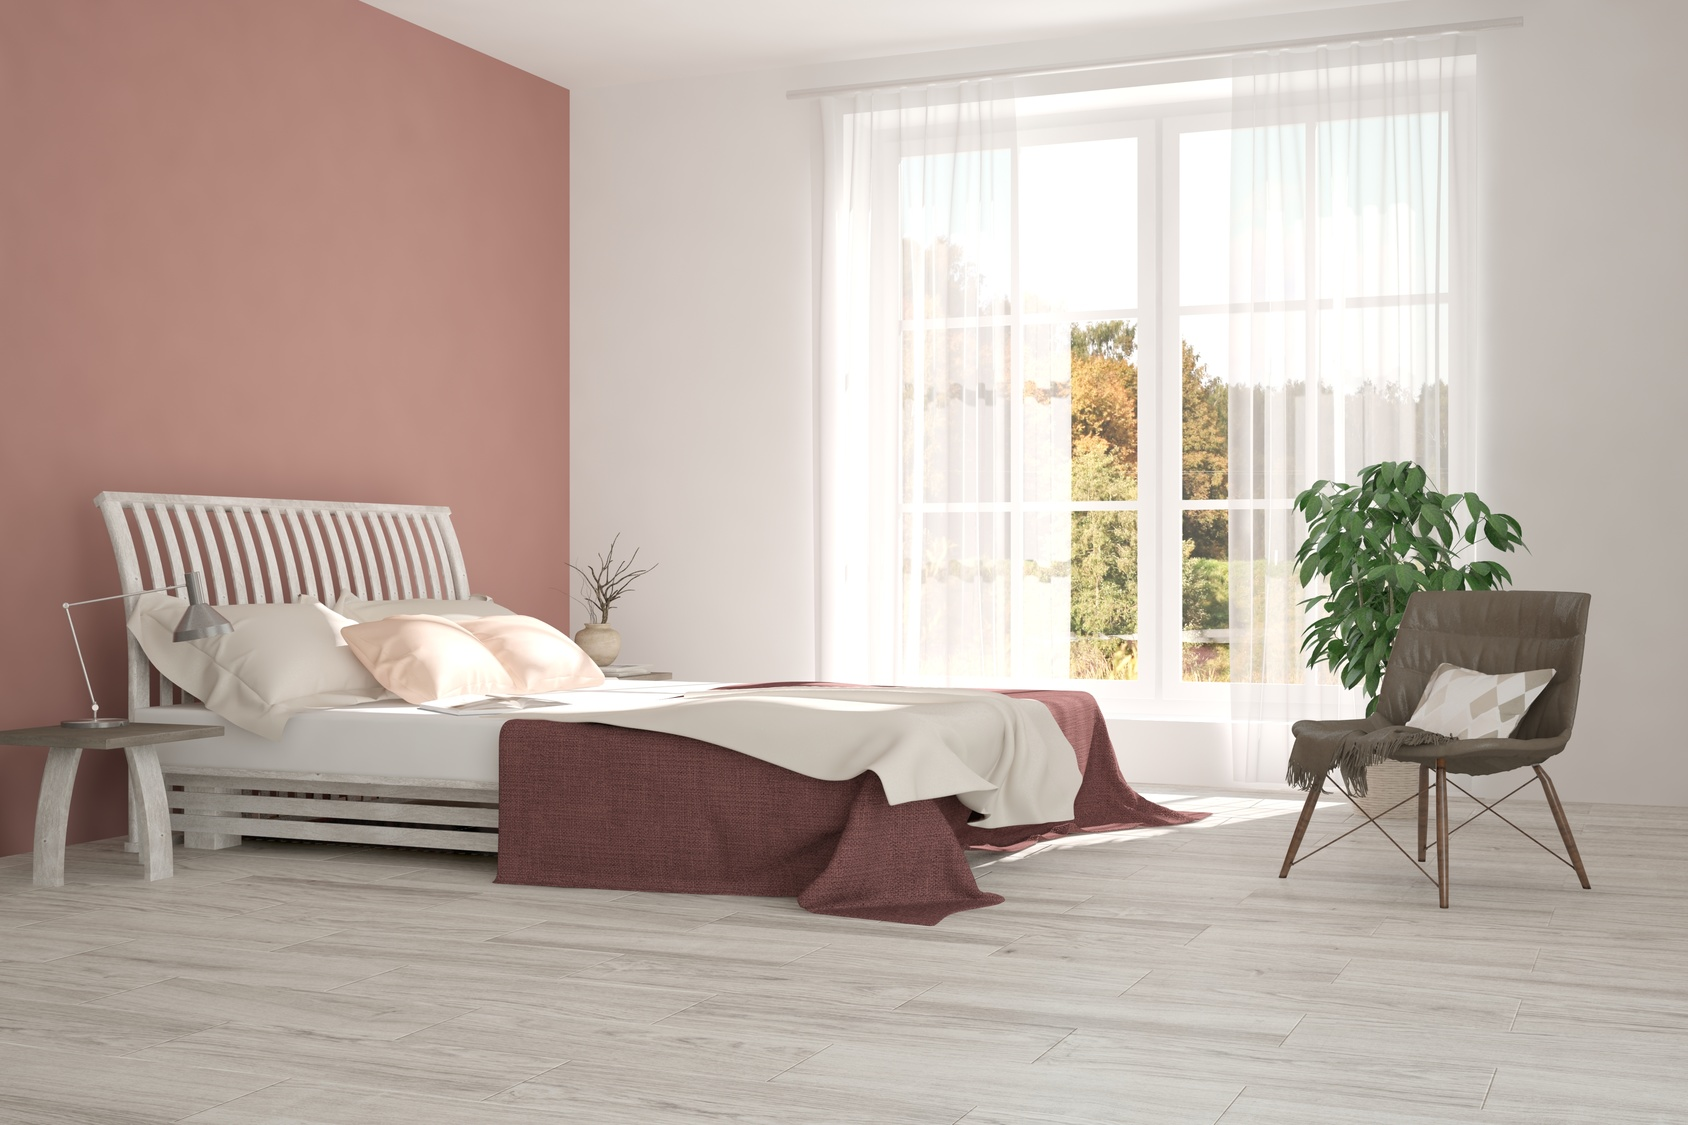 Inspiration of white minimalist  bedroom with autumn landscape in window. Scandinavian interior design. 3D illustration